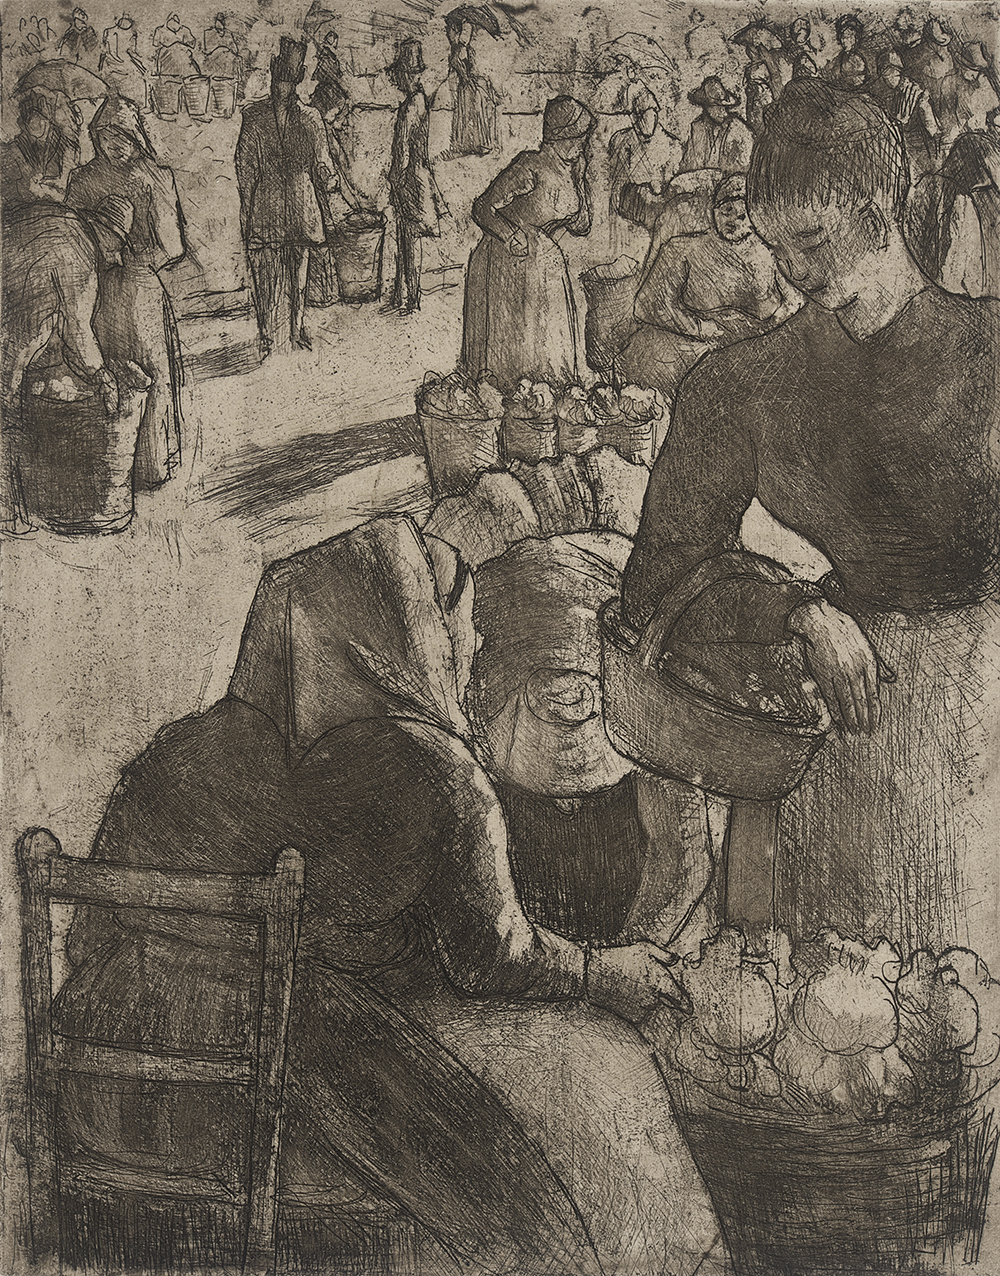 Marché aux Legumes à Pointoise, by Camille Pissarro, 1891. Los Angeles County Museum of Art, Gift of Gene Gill.